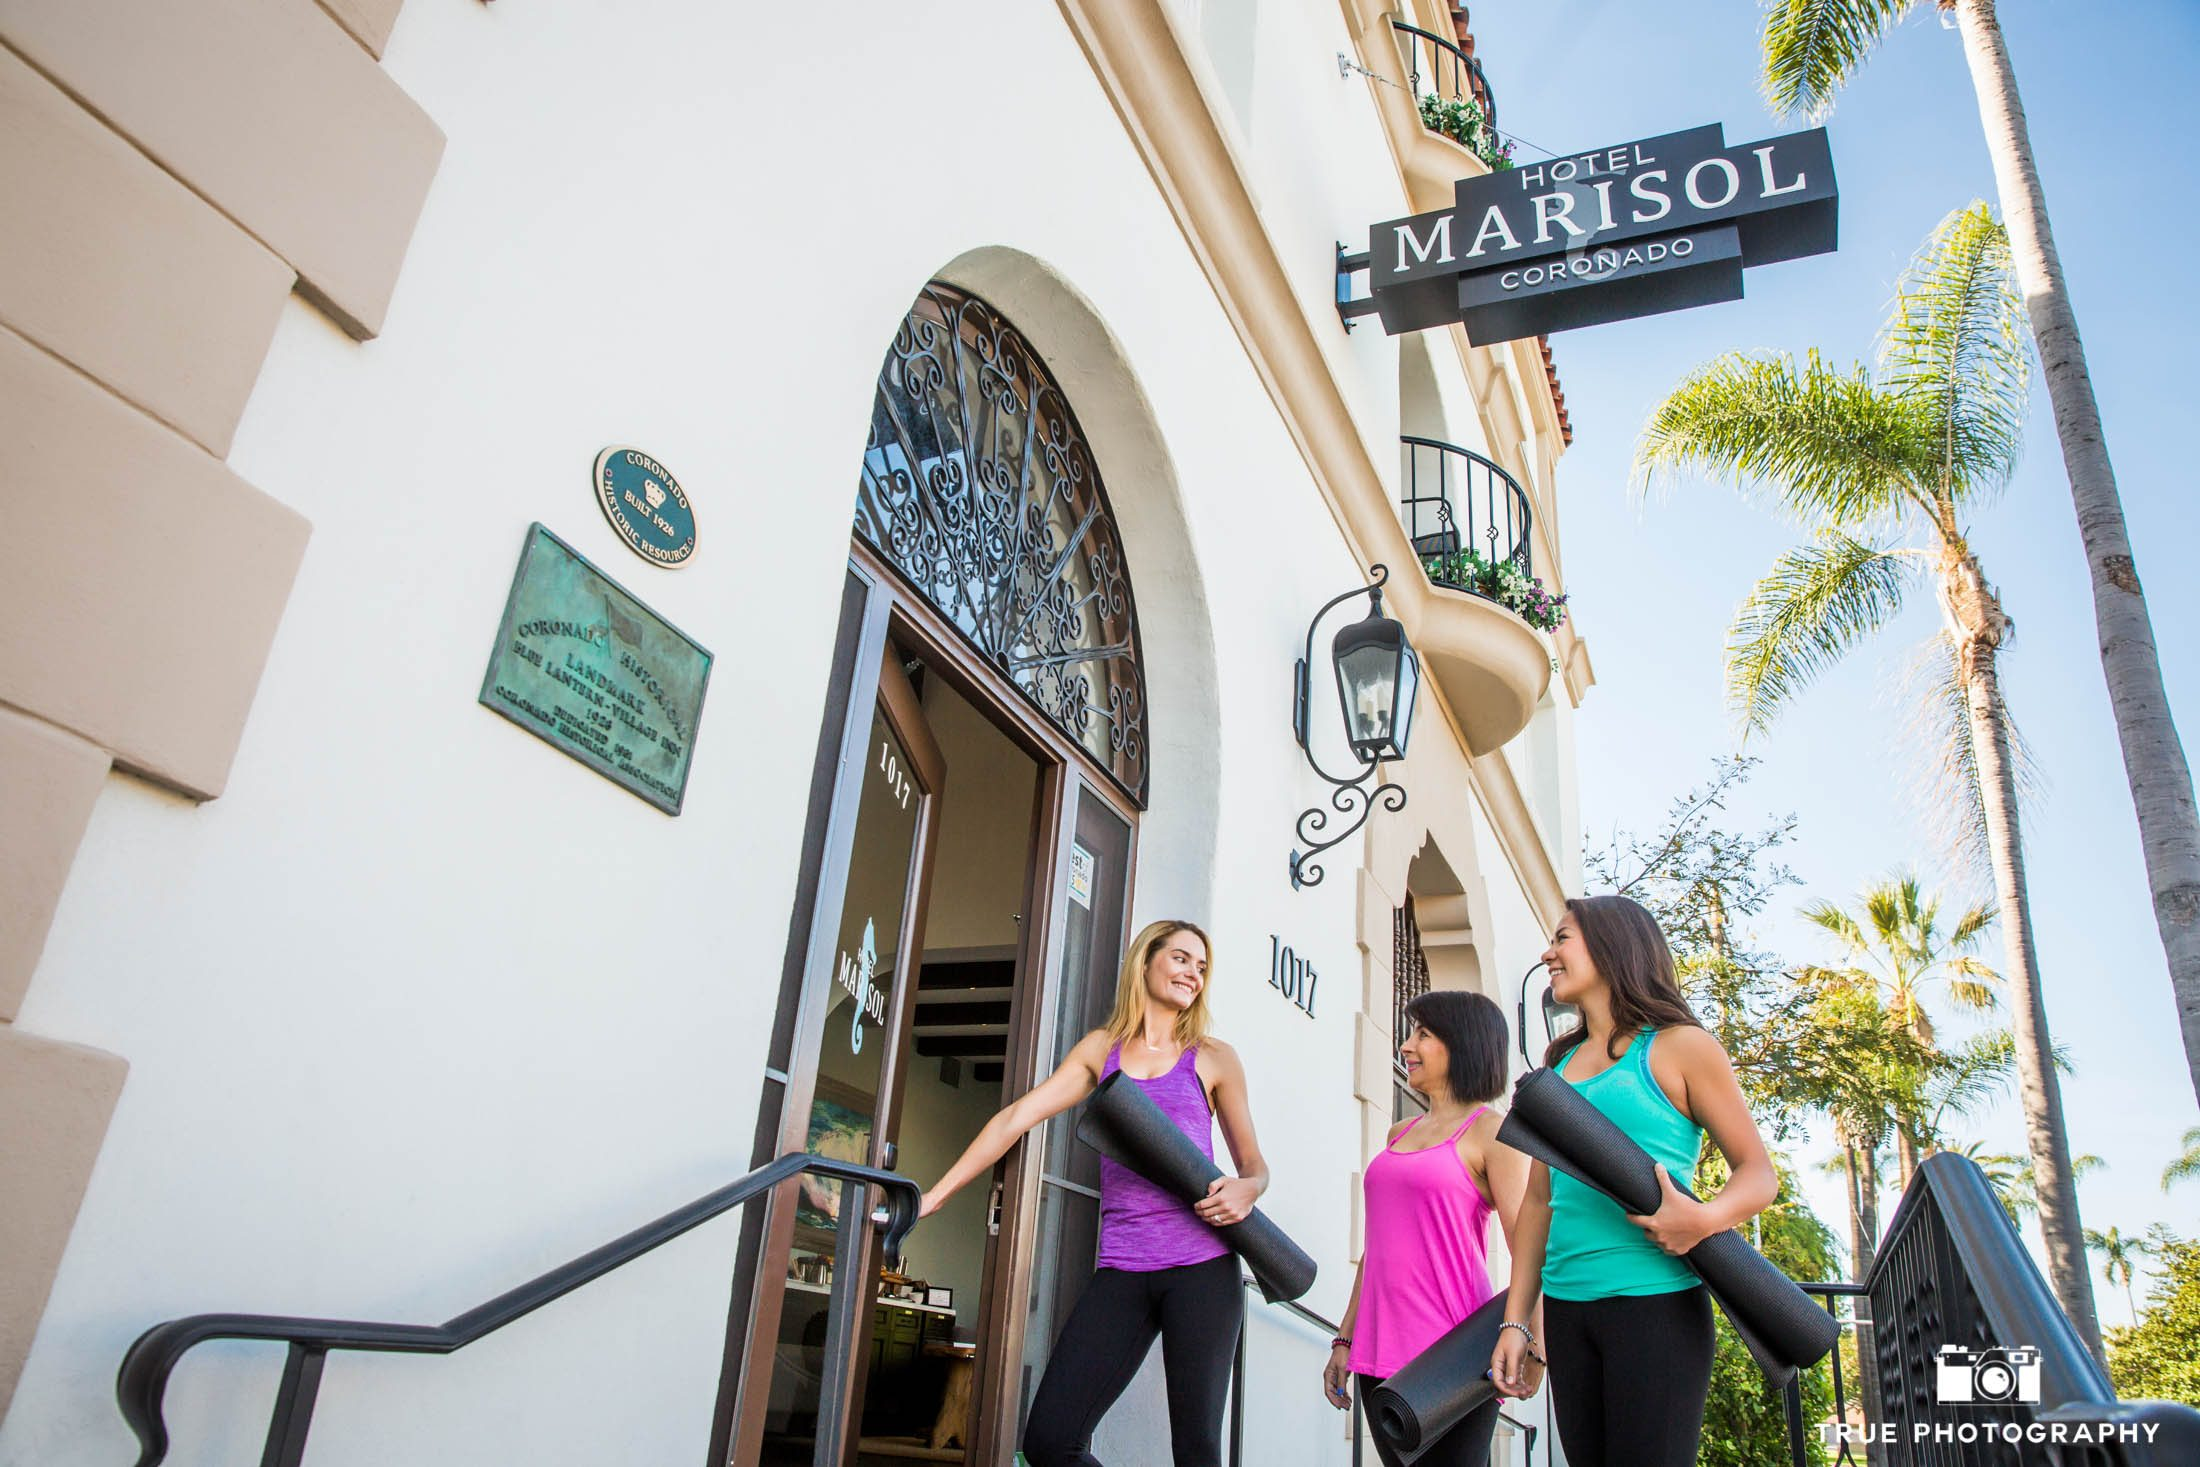 Fit Women at Hotel Marisol